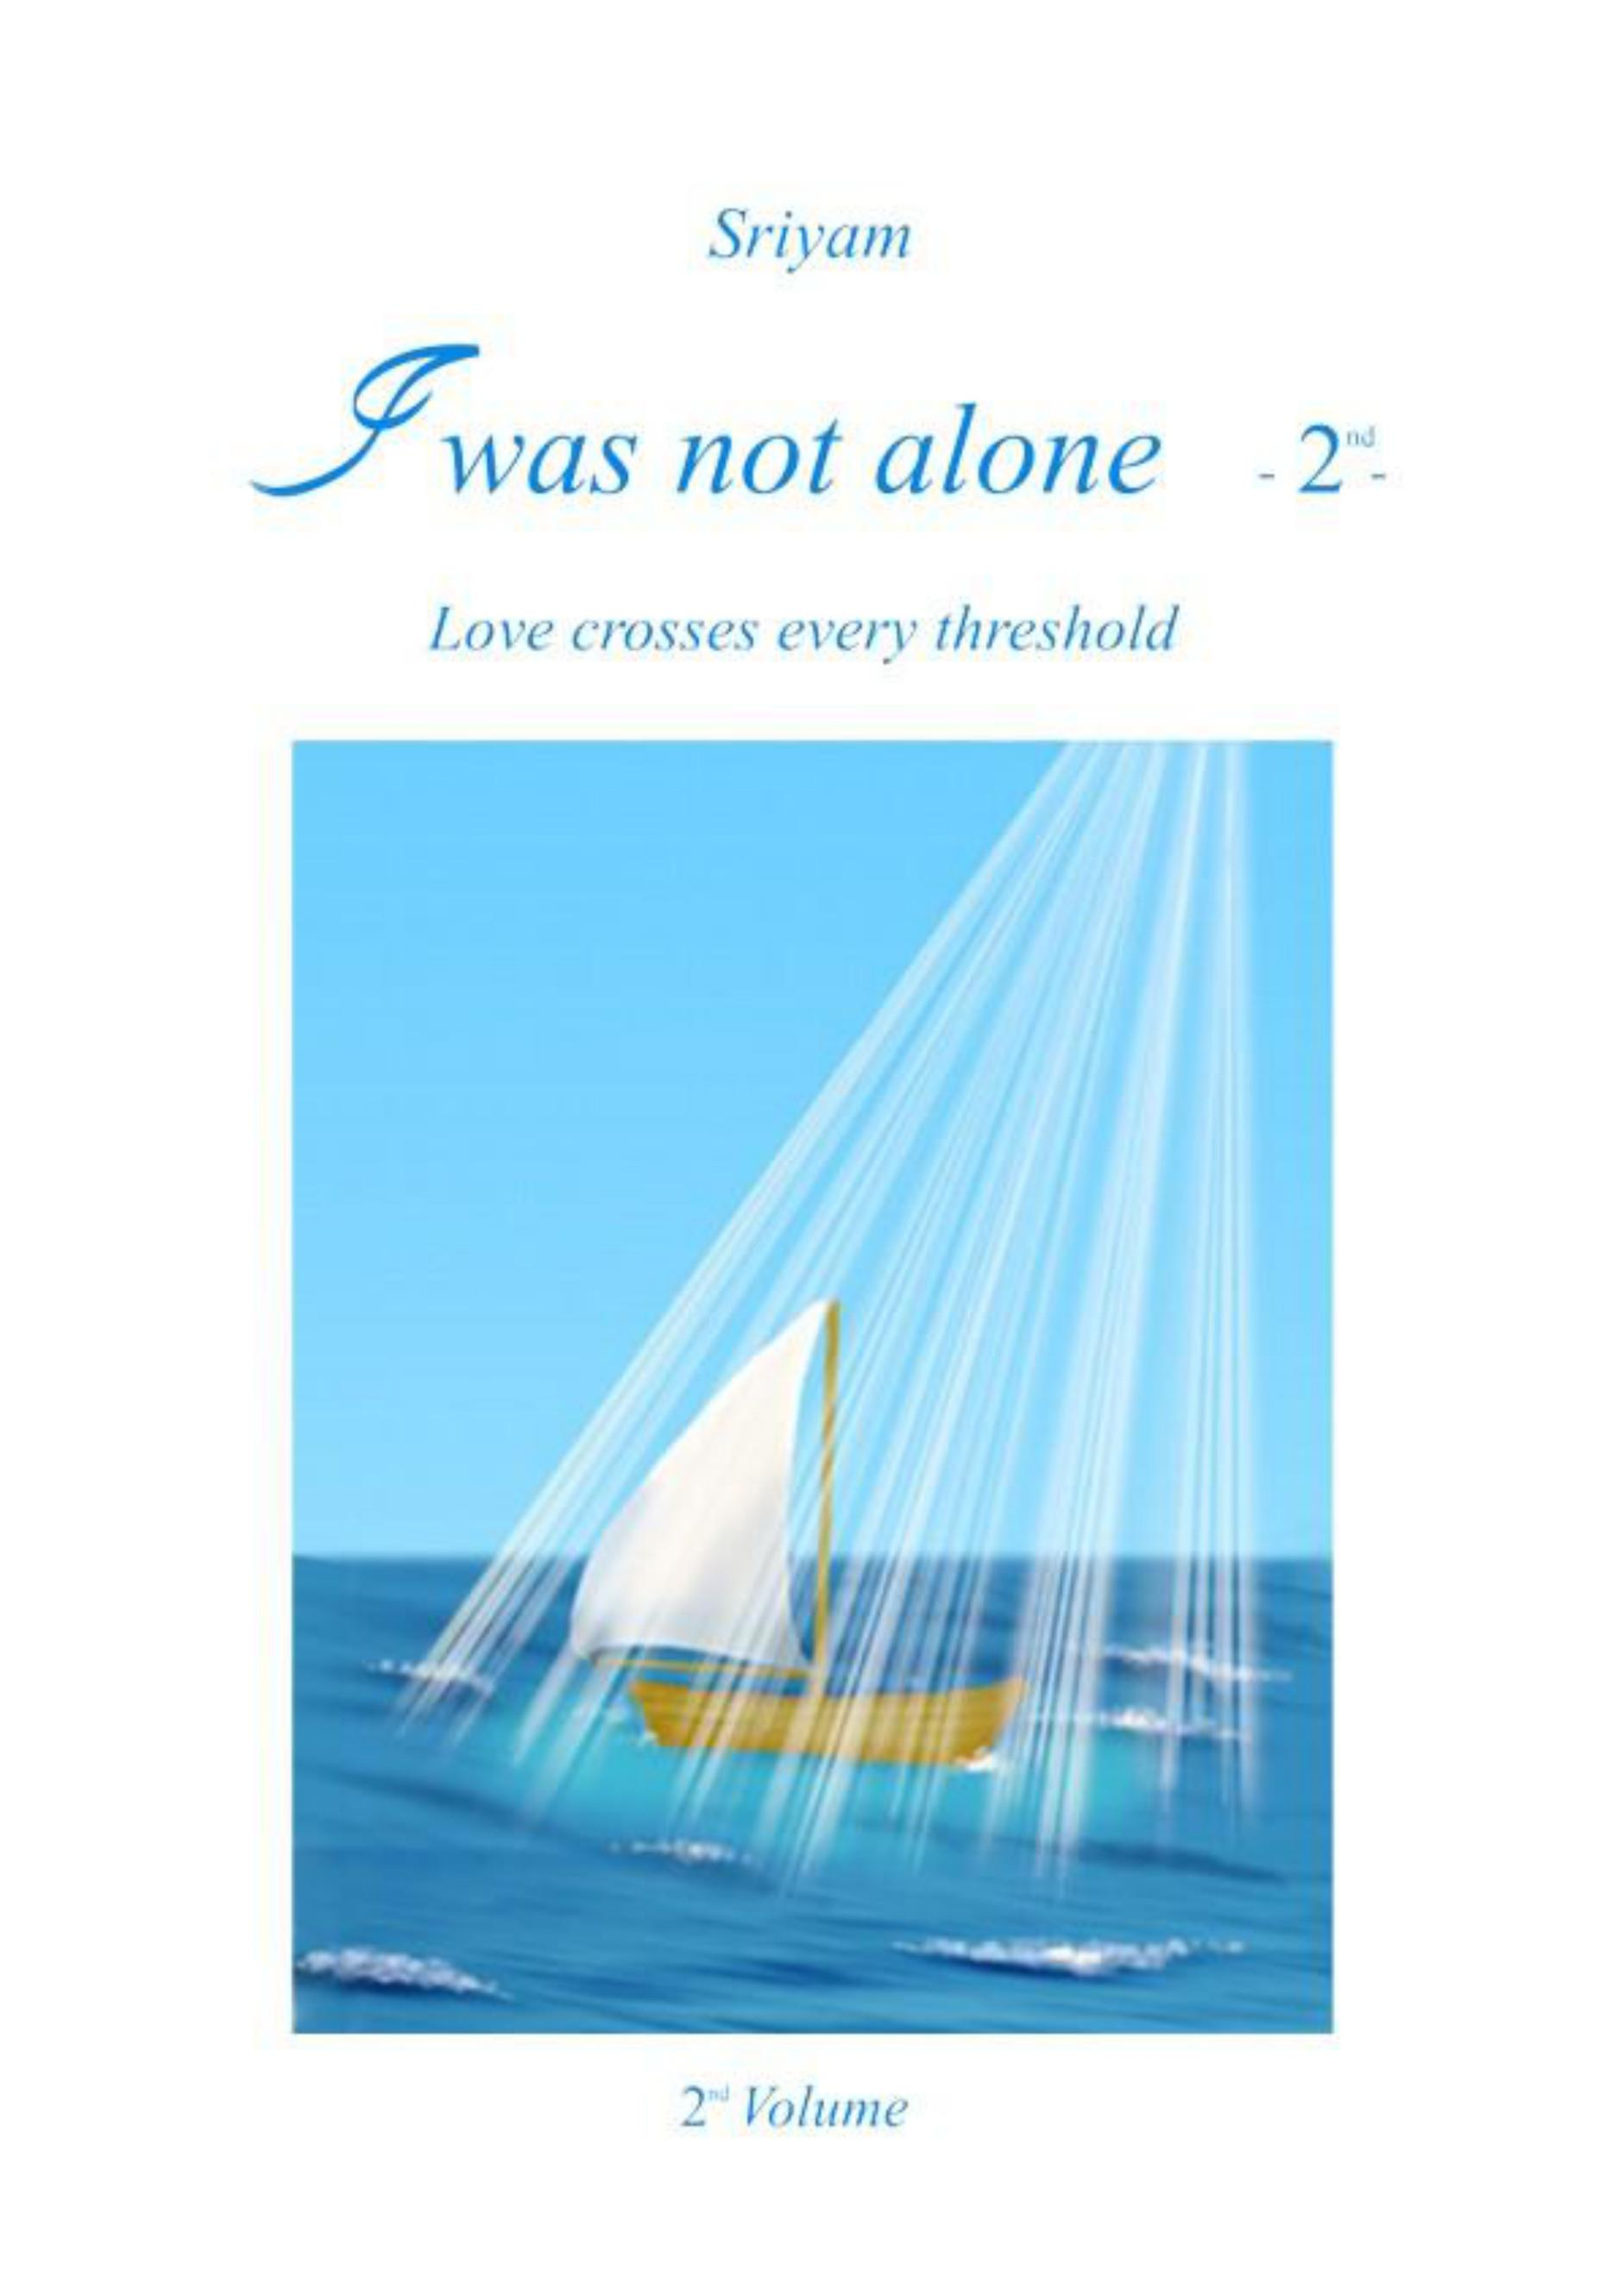 I was not alone (Vol.2)